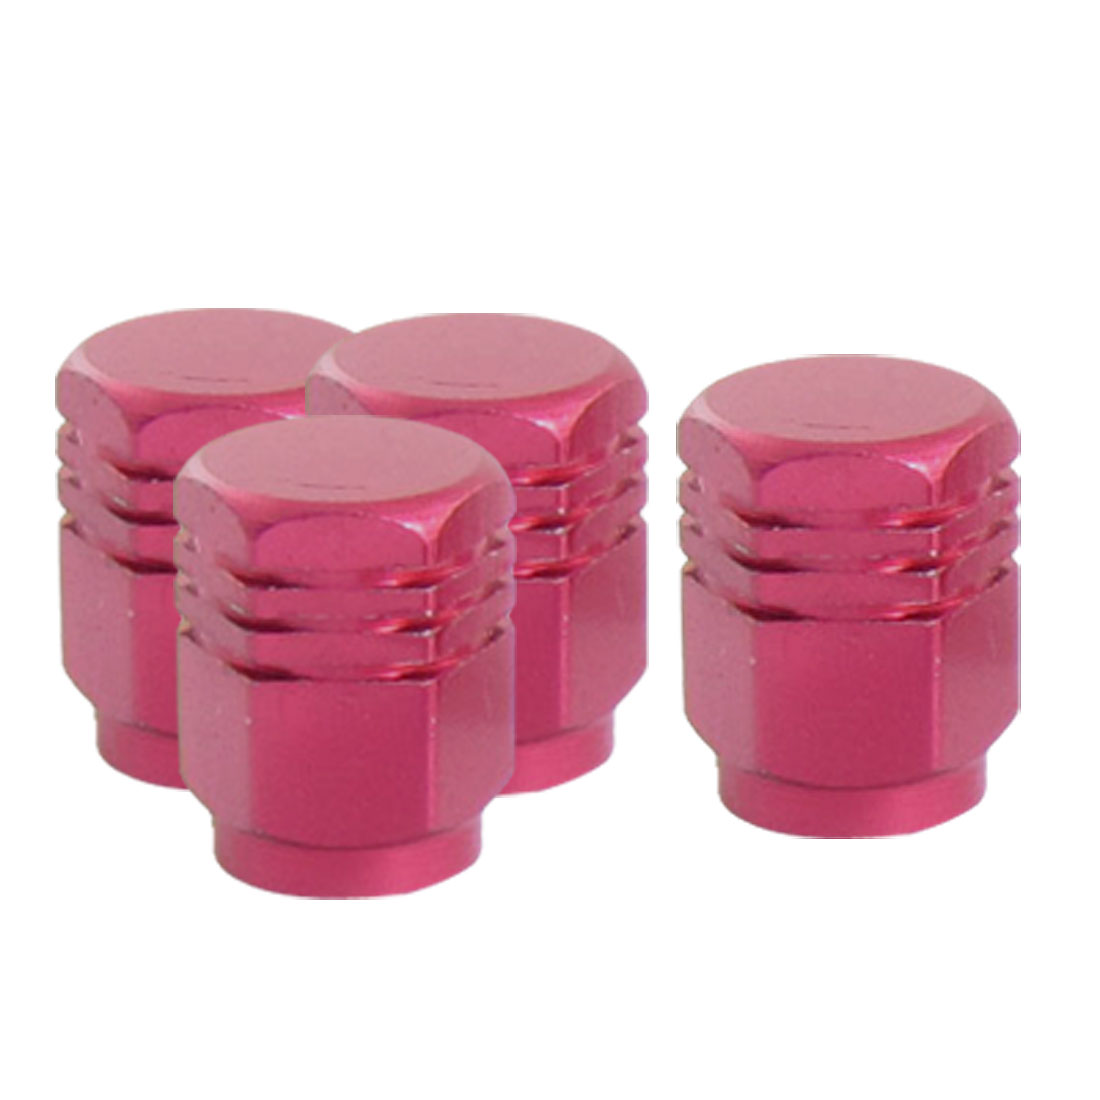 4 Pcs Hex Shaped Alloy Tire Air Valve Stems Cover for Car